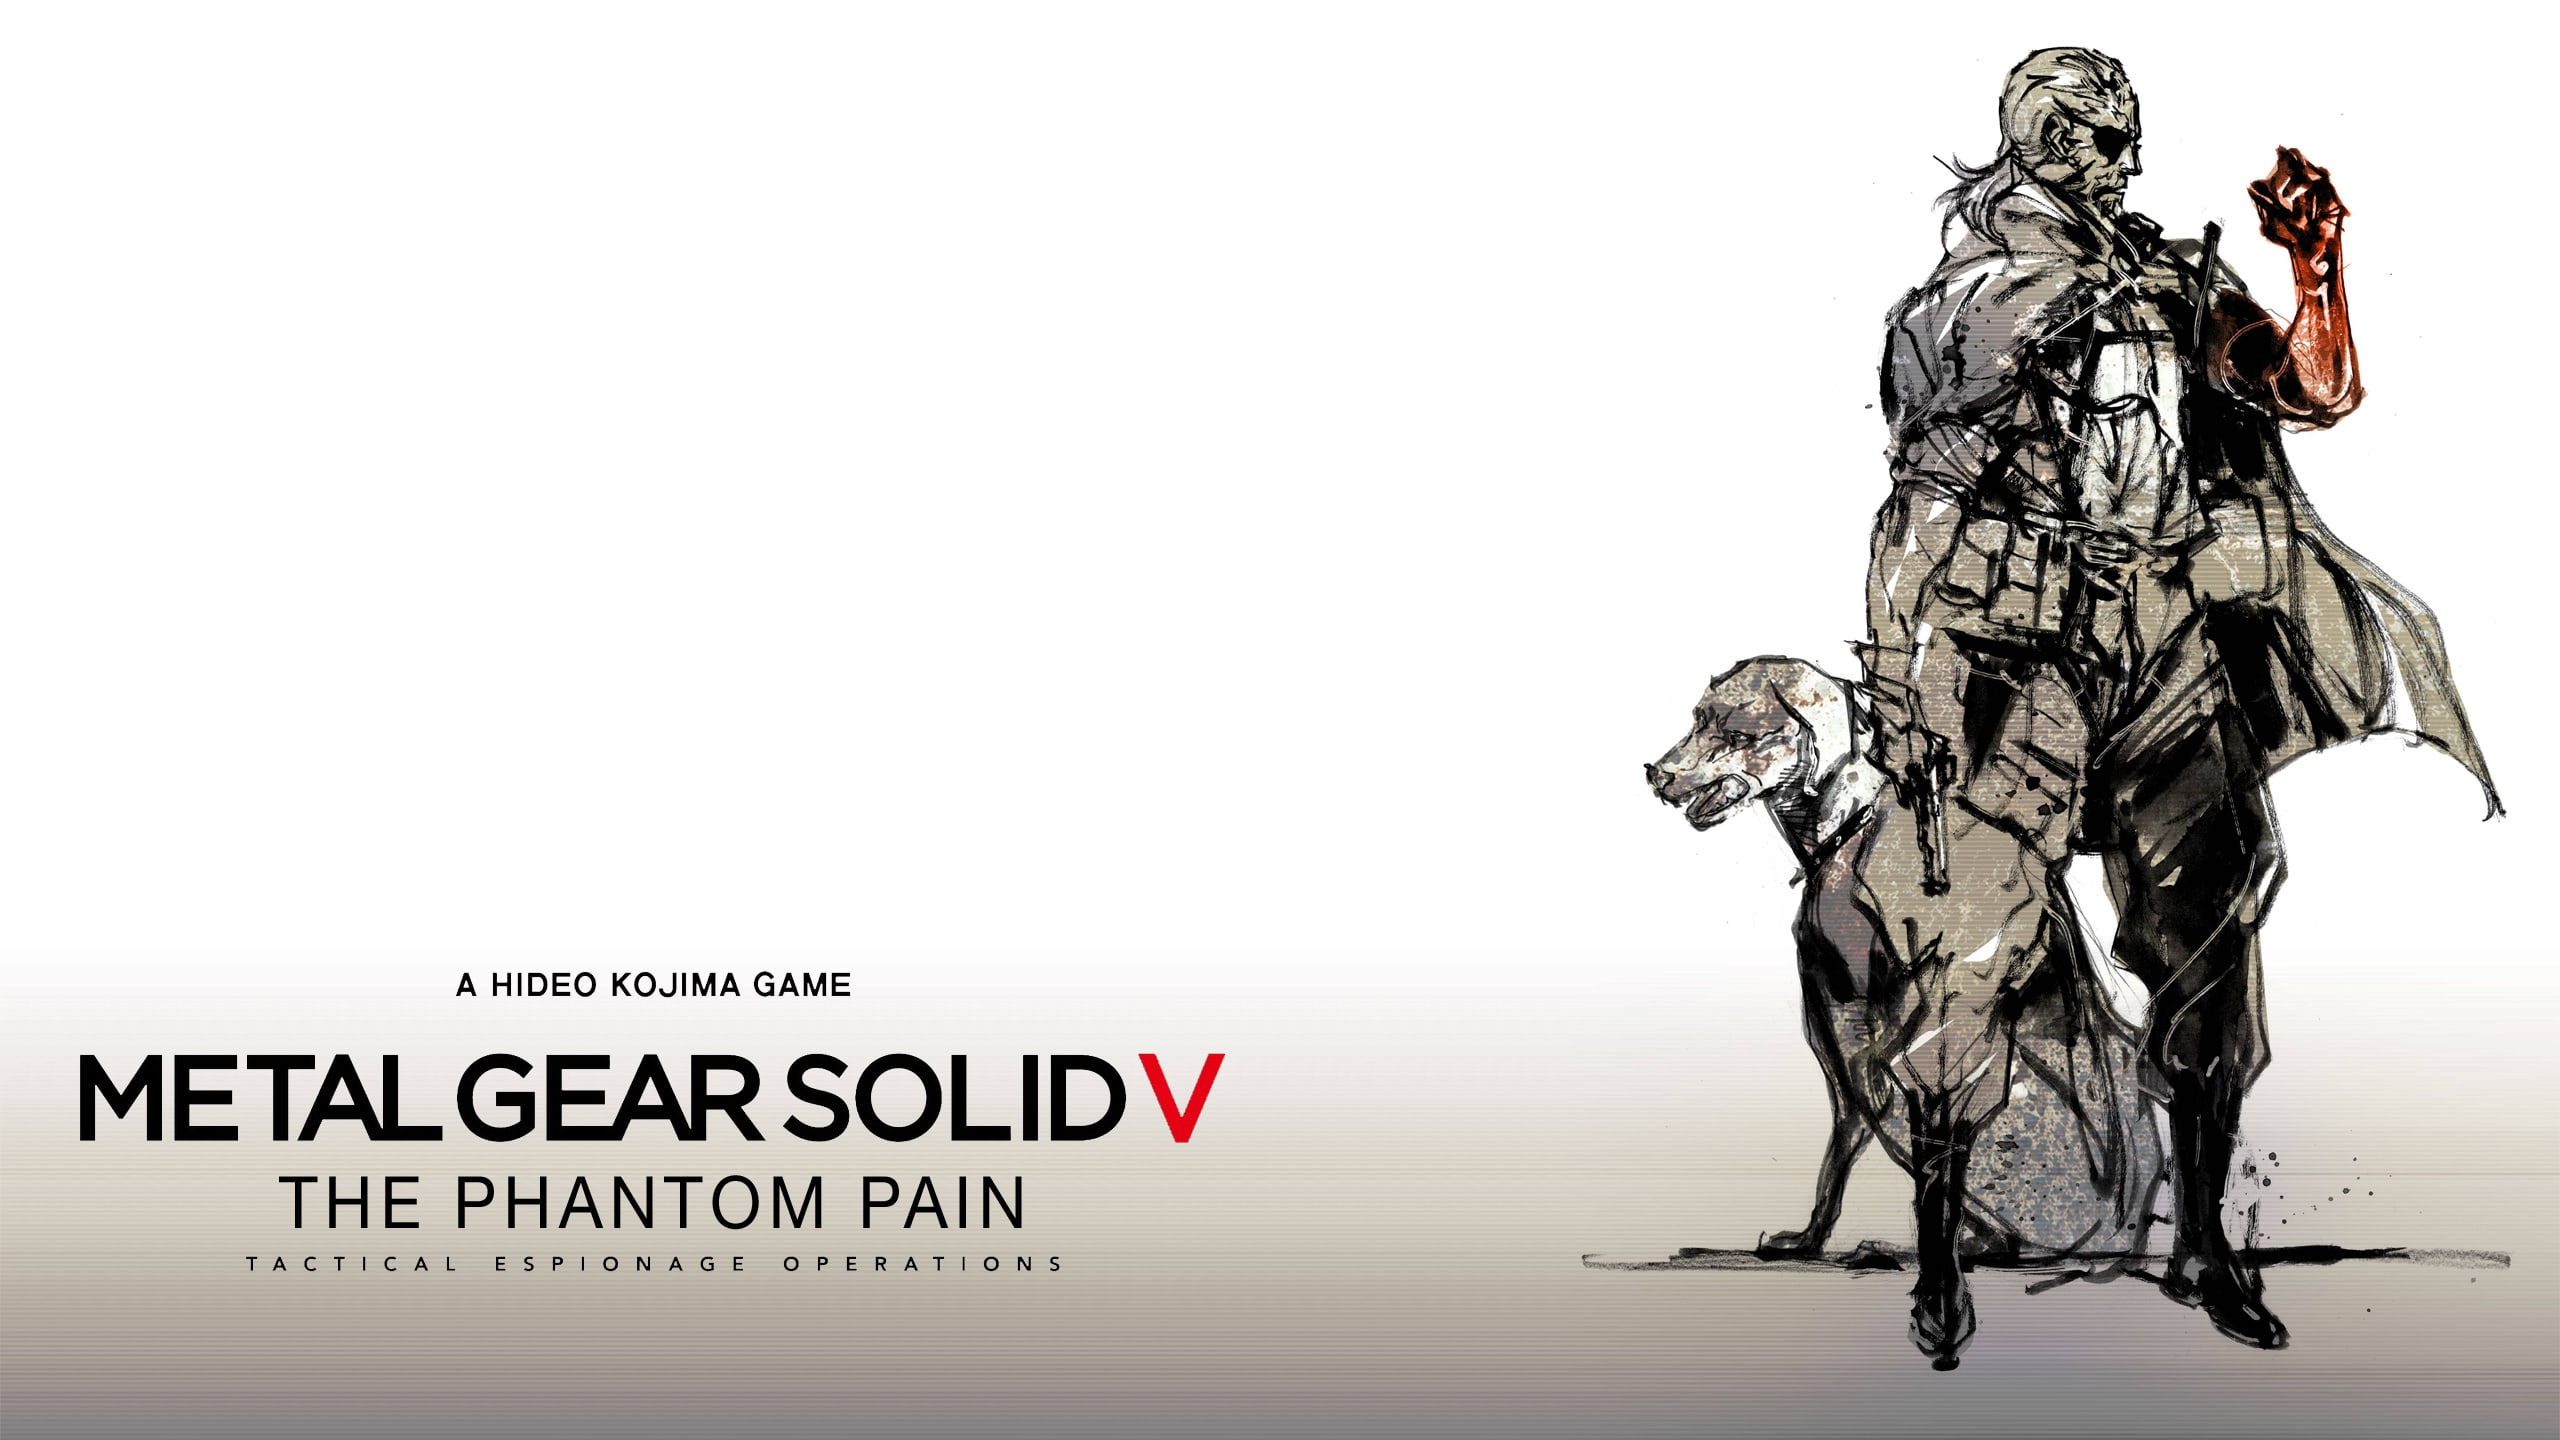 Metal Gear Solid V: The Phantom Pain HQ wallpapers